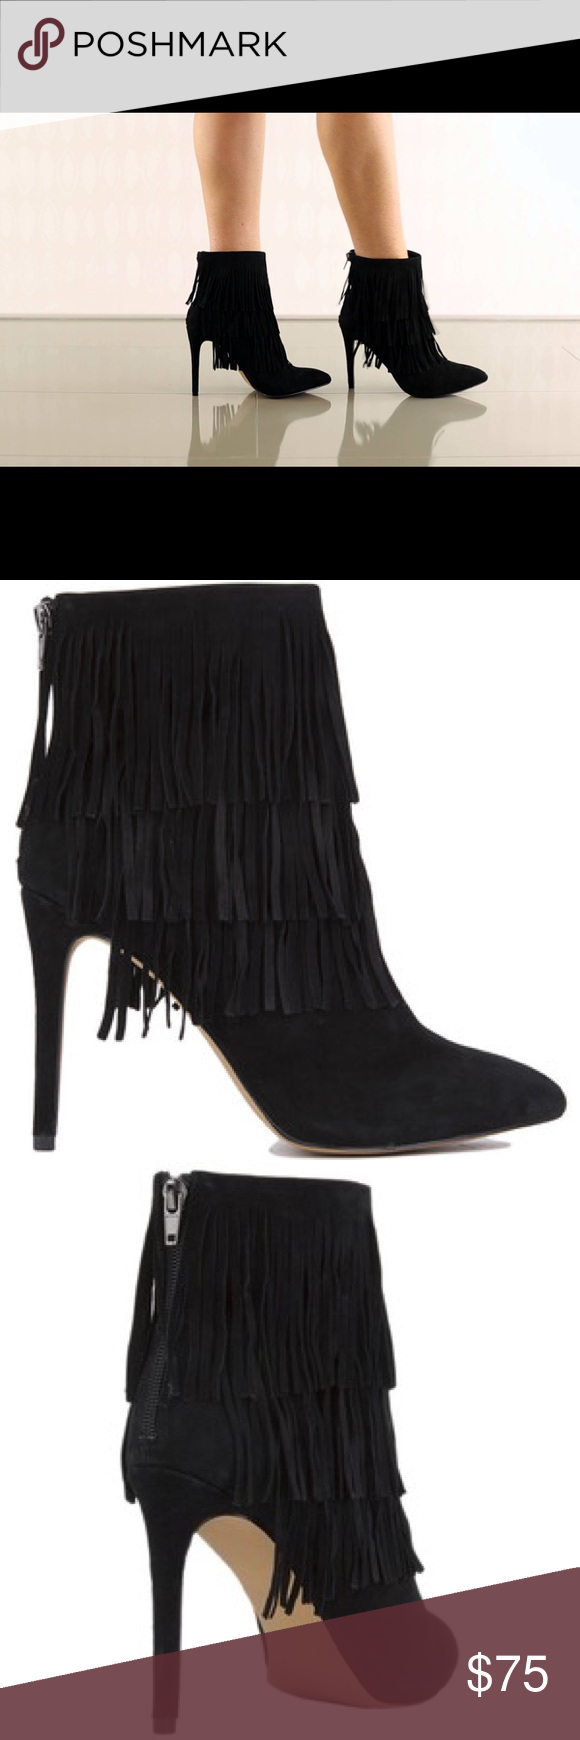 3a9c54feb89 Steve Madden Flapper Layered Suede Fringe Booties